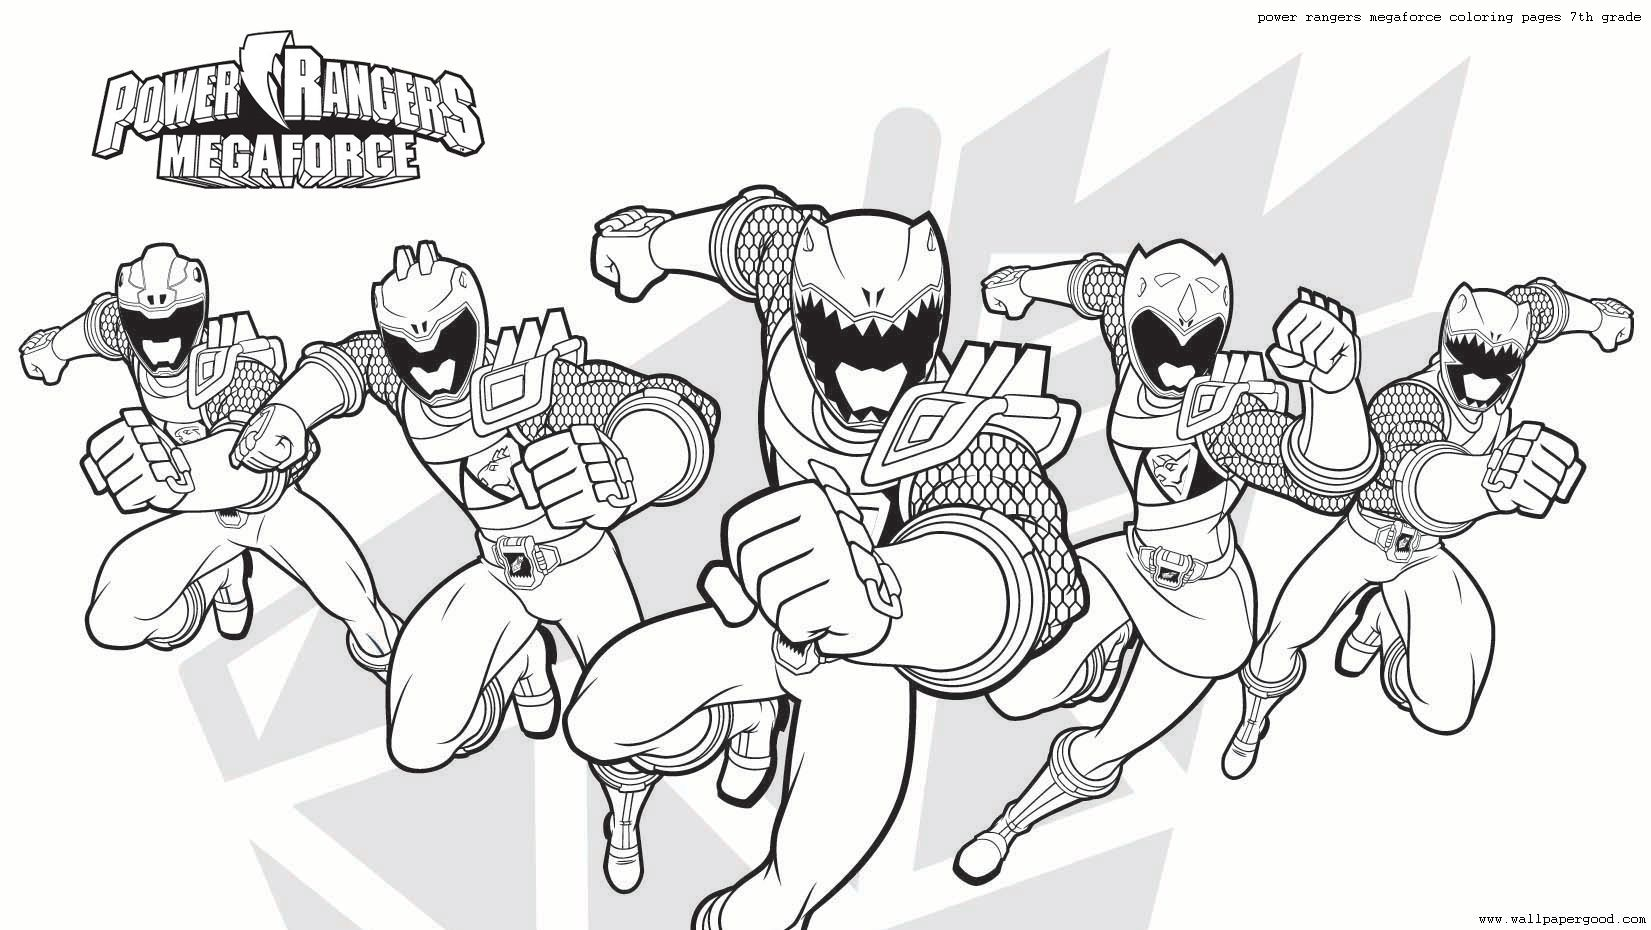 power rangers megaforce coloring pages 7th grade